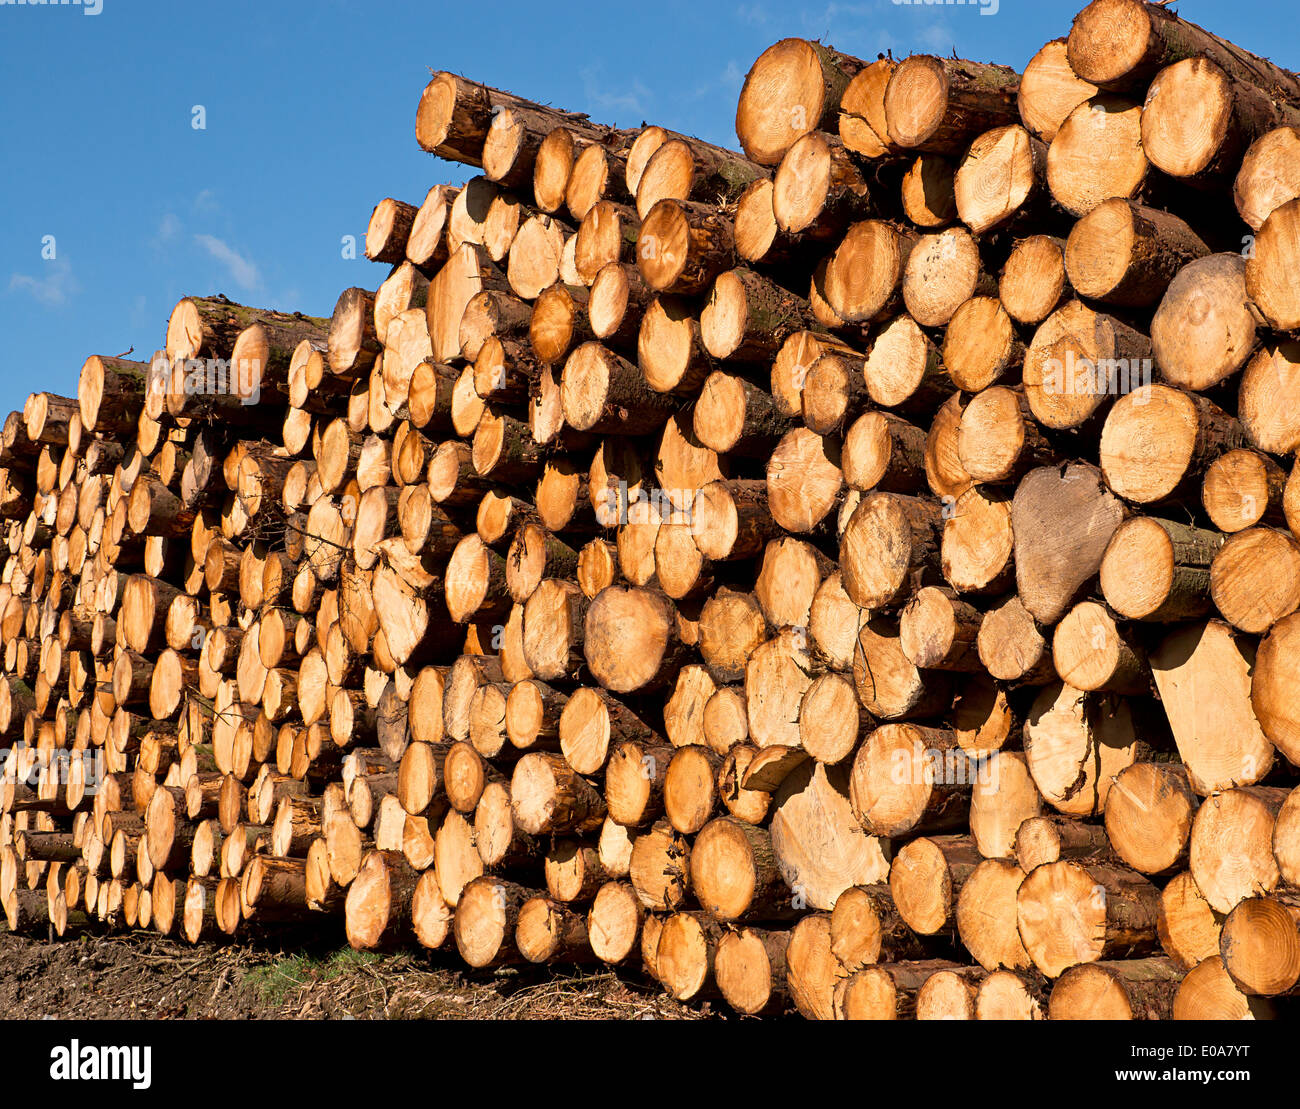 woodpile of freshly cut lumber awaiting distribution after seasoning for the forestry industry - Stock Image